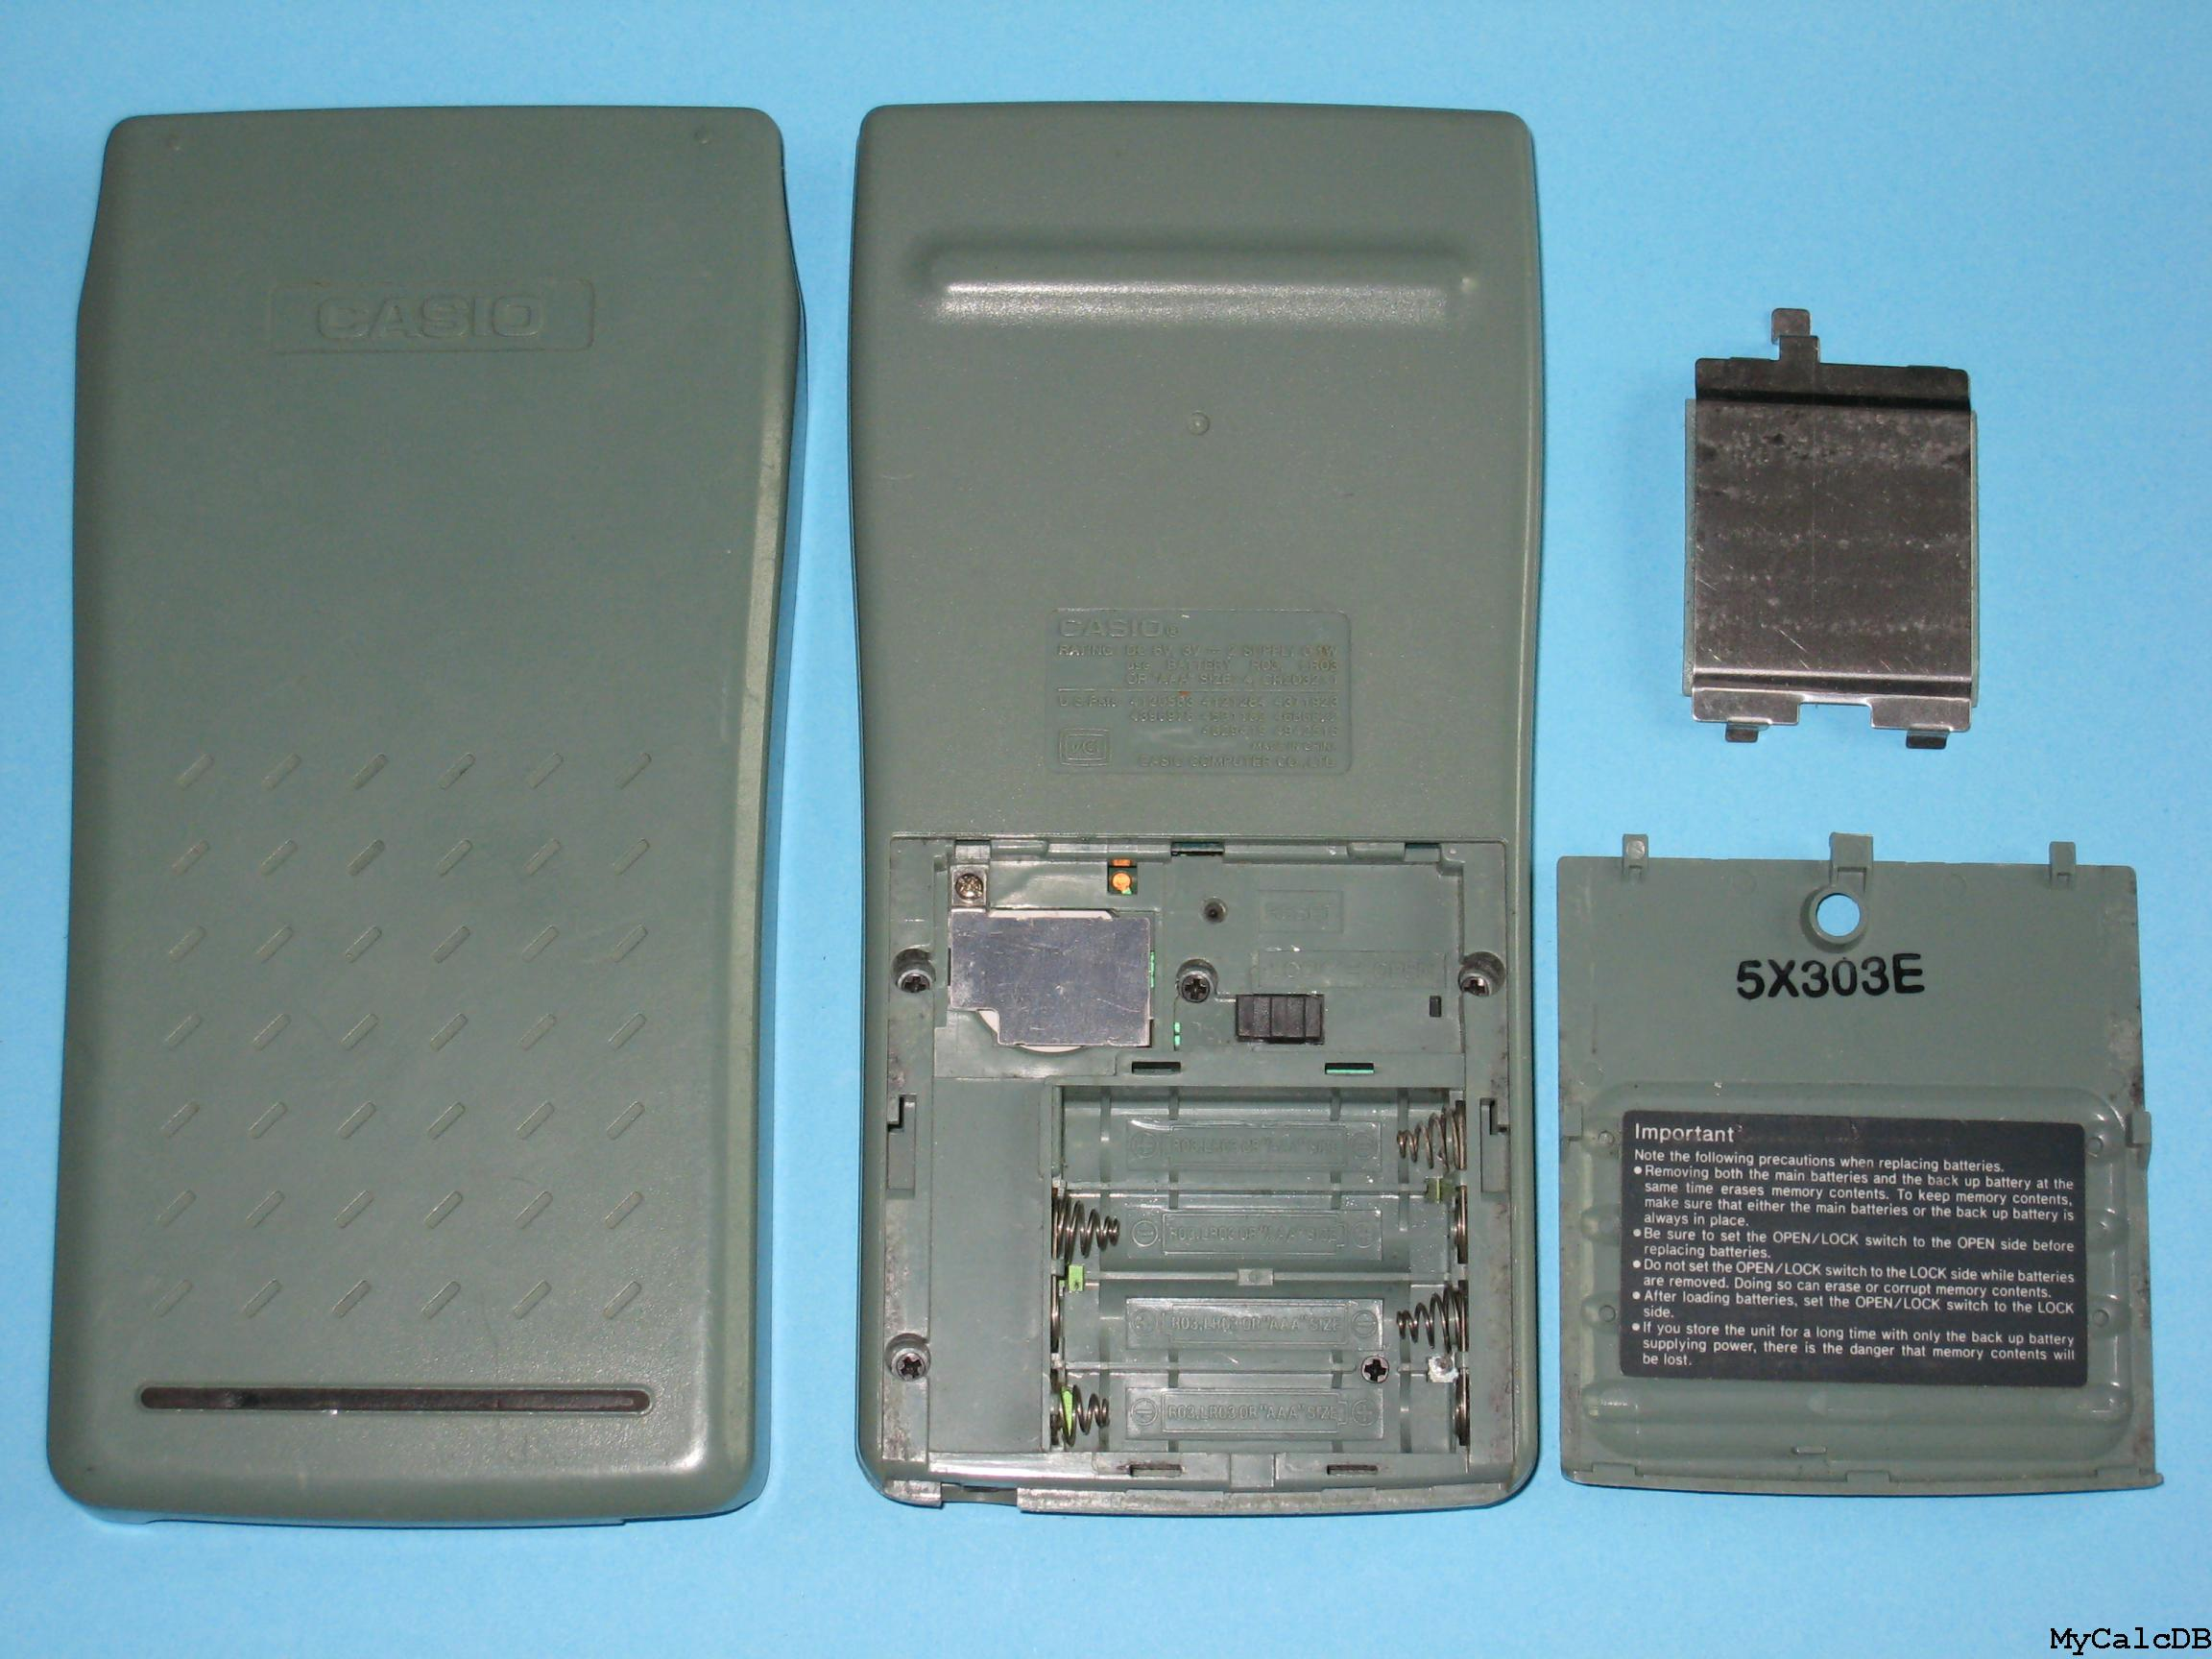 Casio fx-7900GC